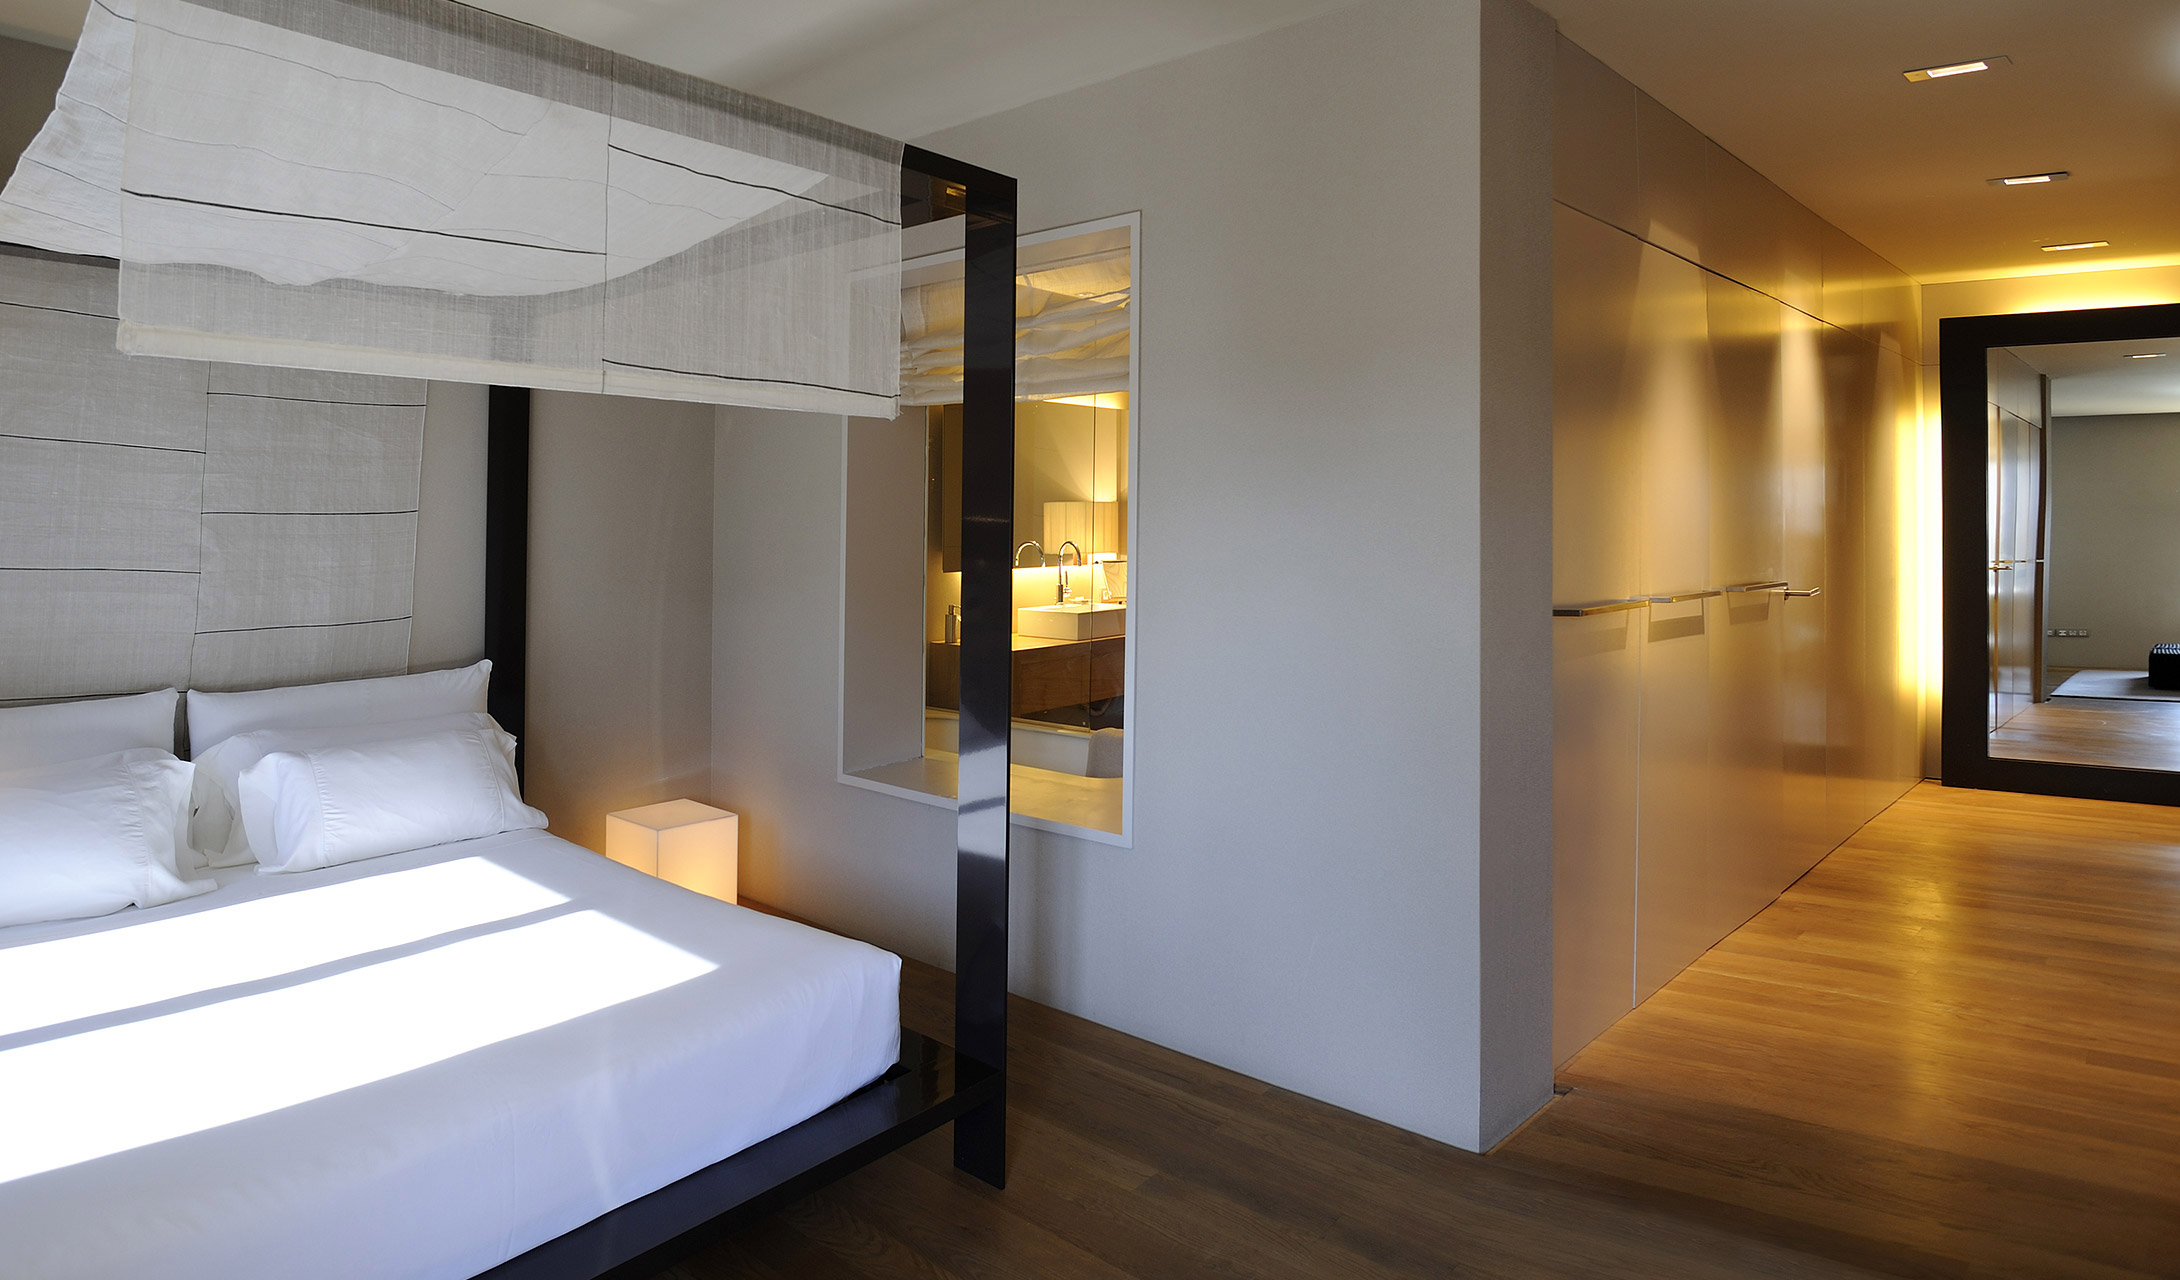 Hotel omm barcelona spain design hotels for Design hotel barcelona